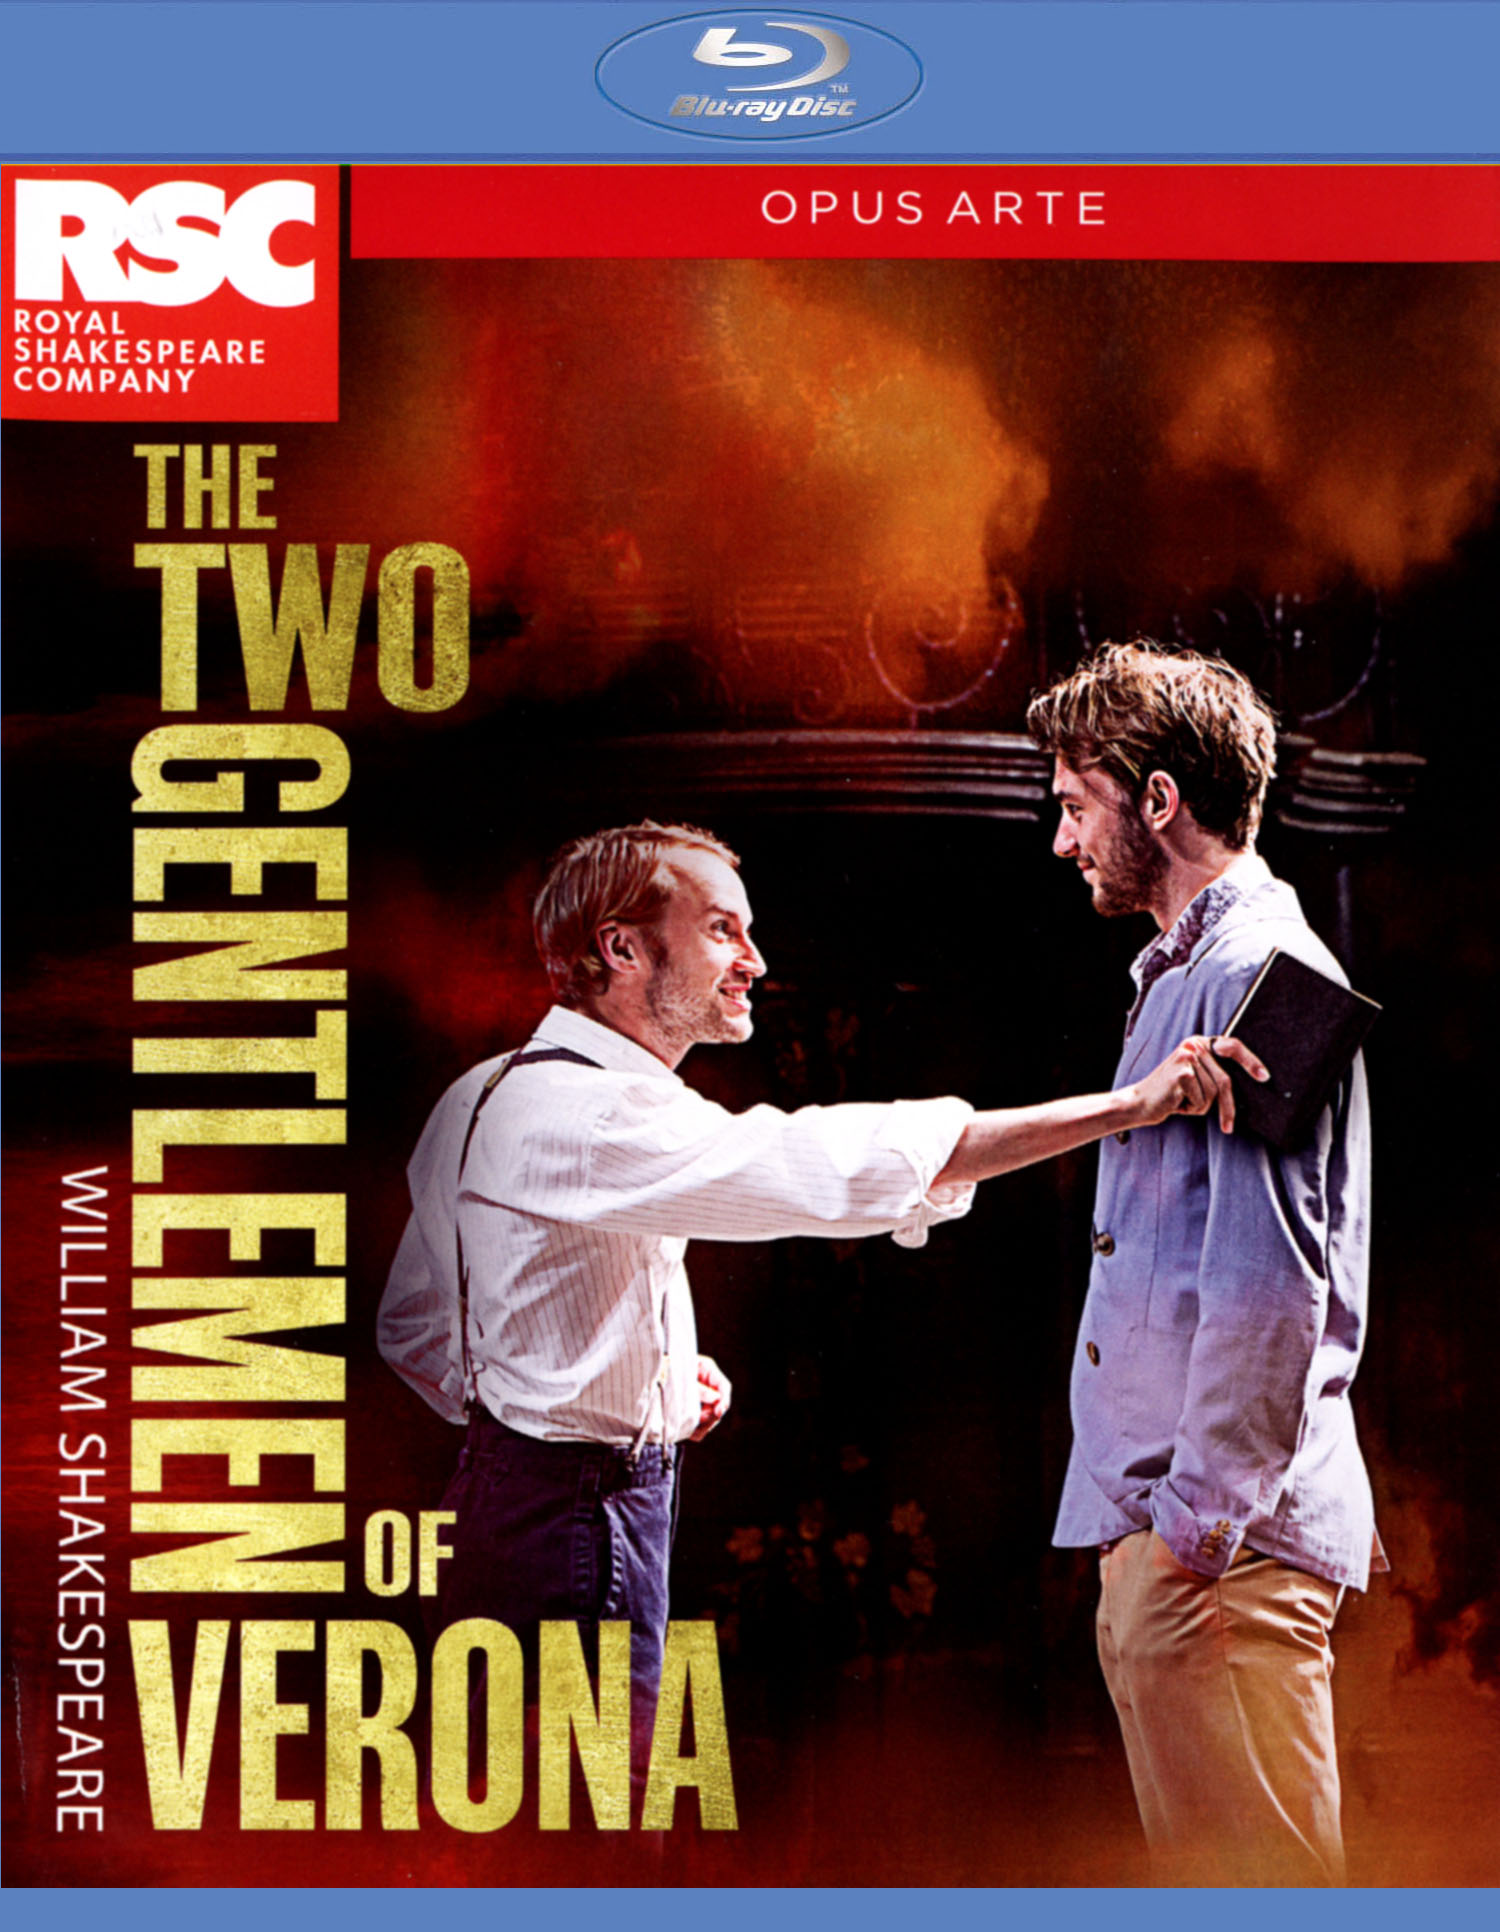 The Two Gentlemen of Verona (Royal Shakespeare Company)